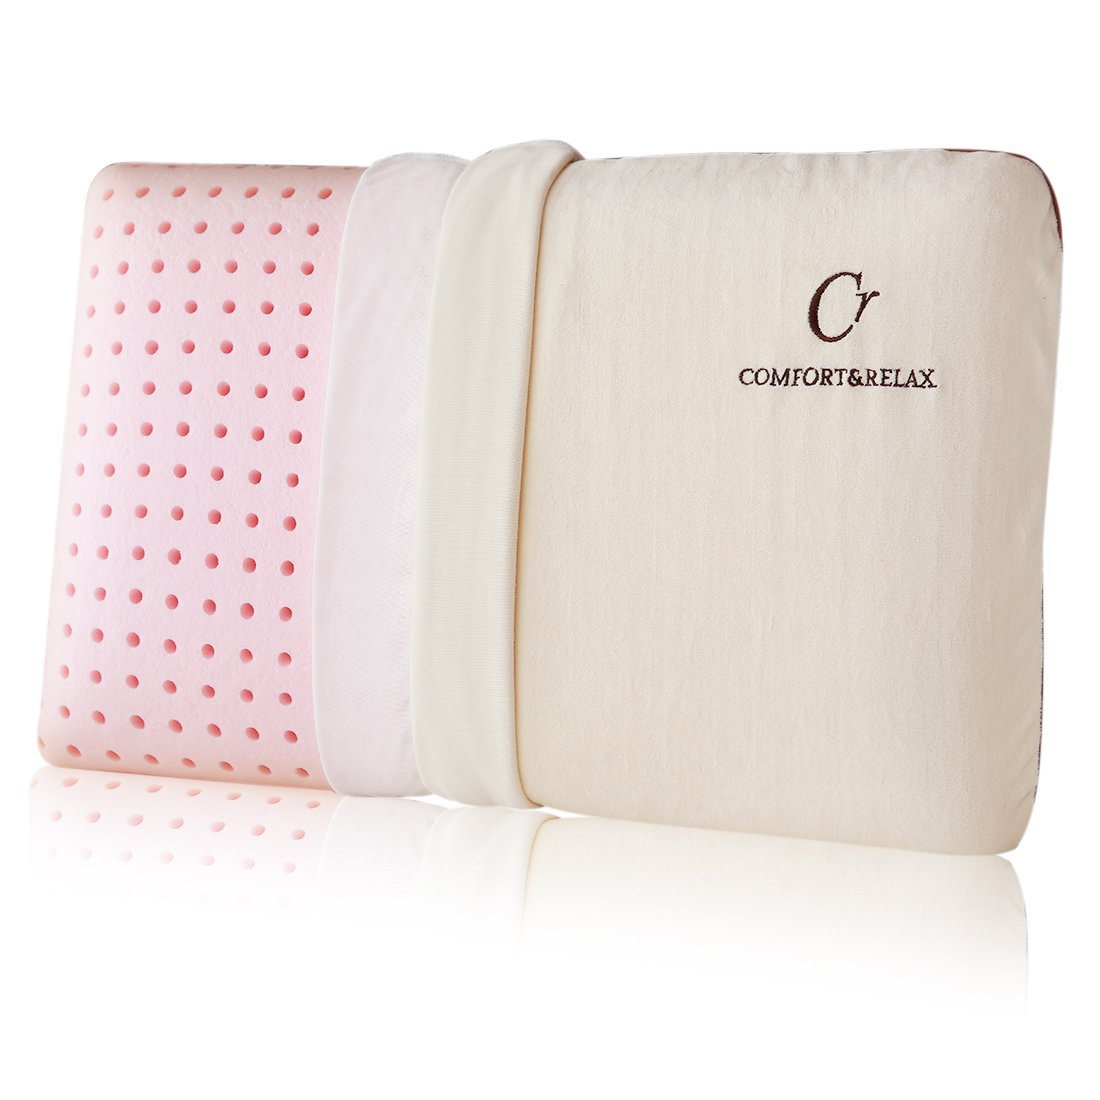 Comfort & Relax Memory Foam Pillow for Sleeping with Ventilation Technology, Medium Soft, Standand